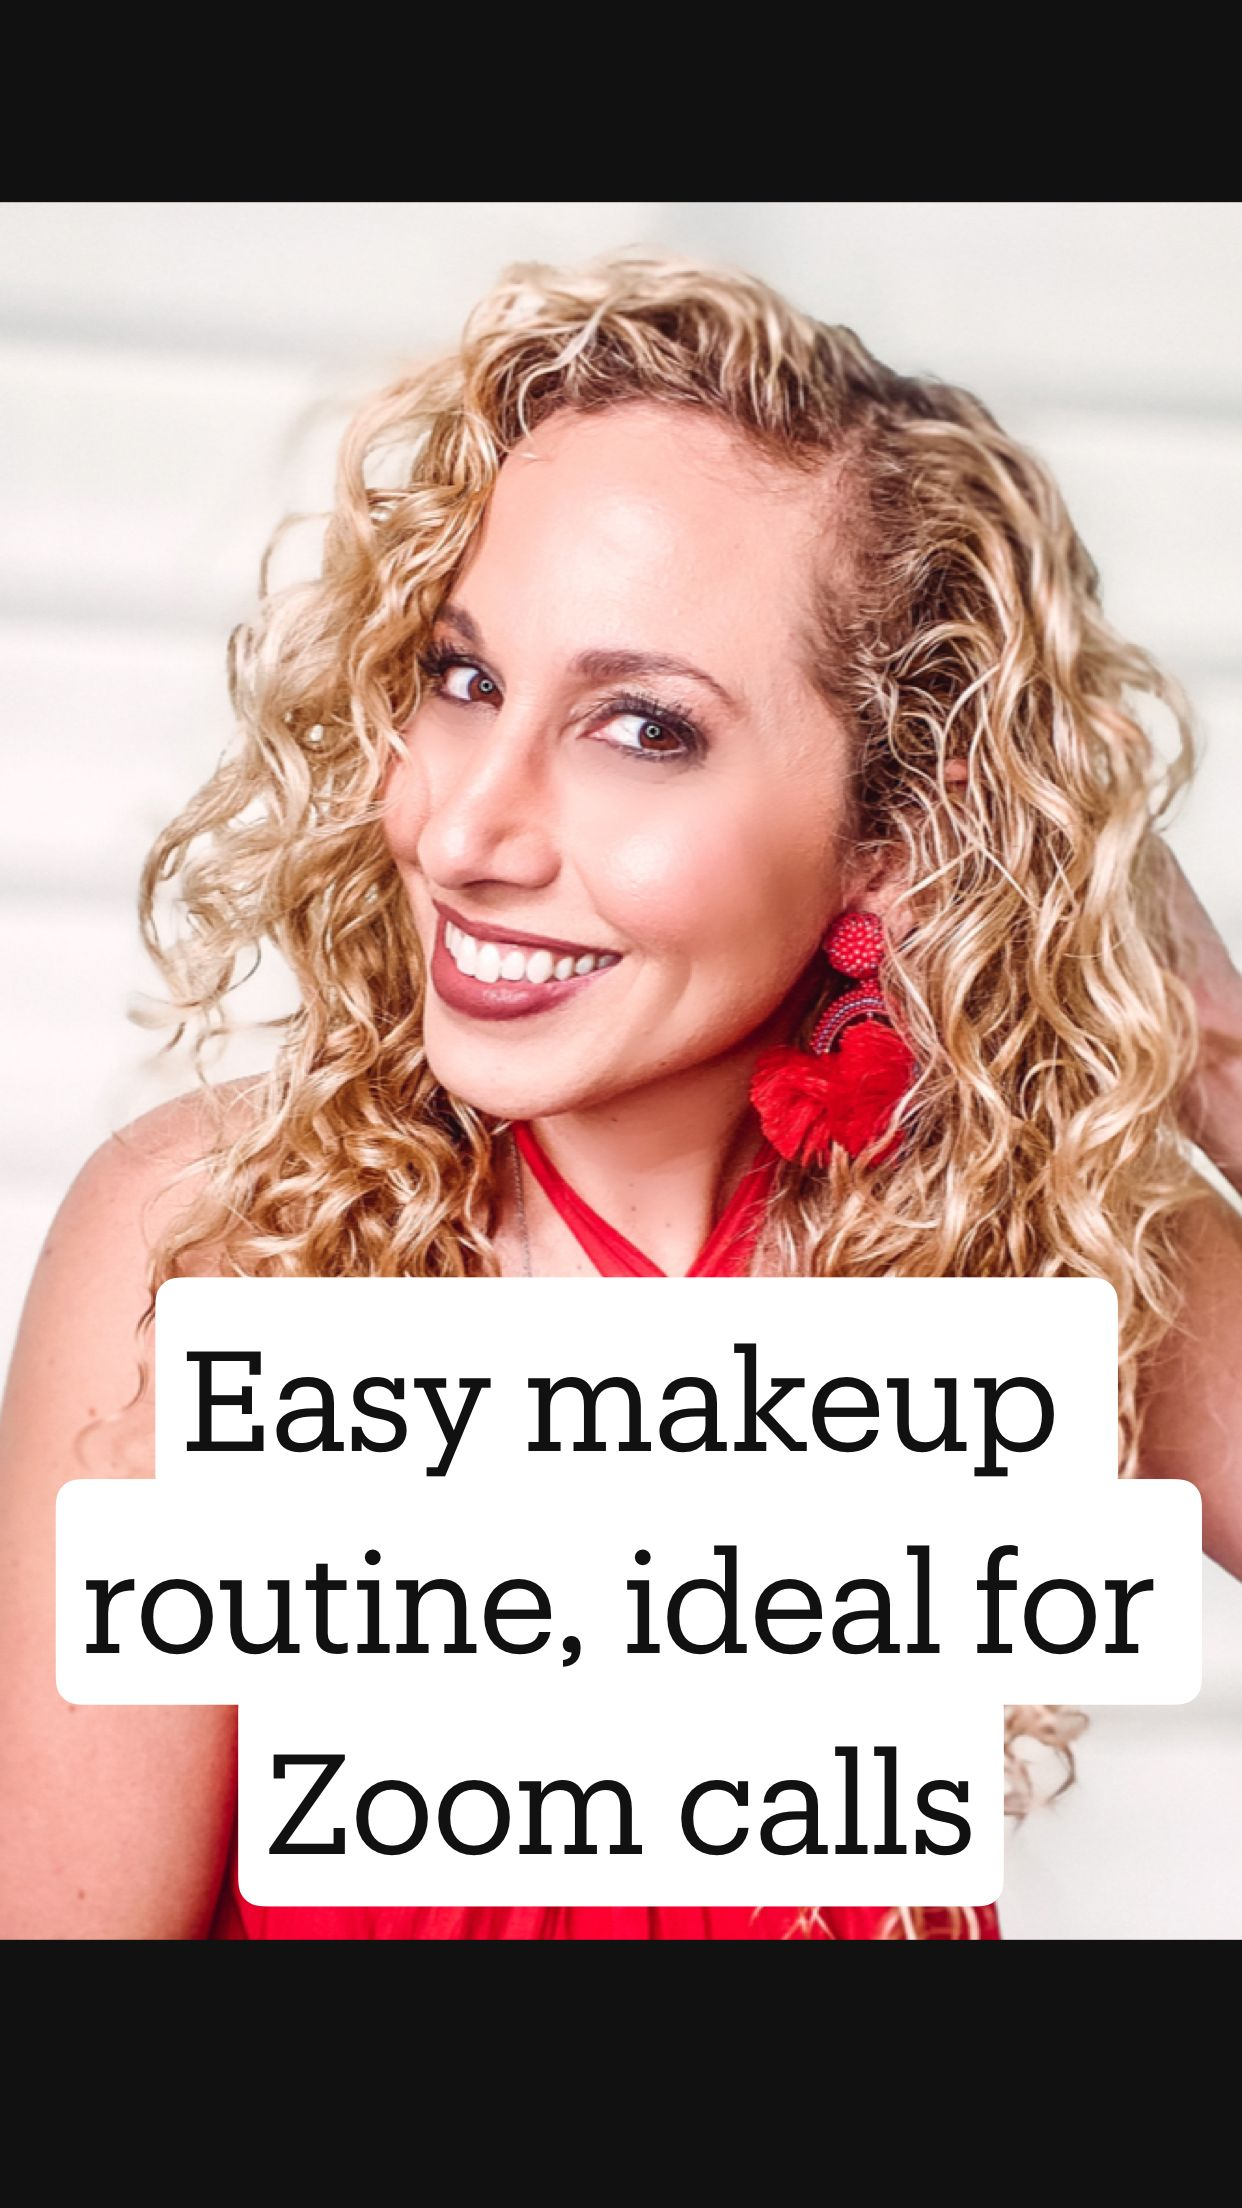 Easy makeup routine, ideal for Zoom calls